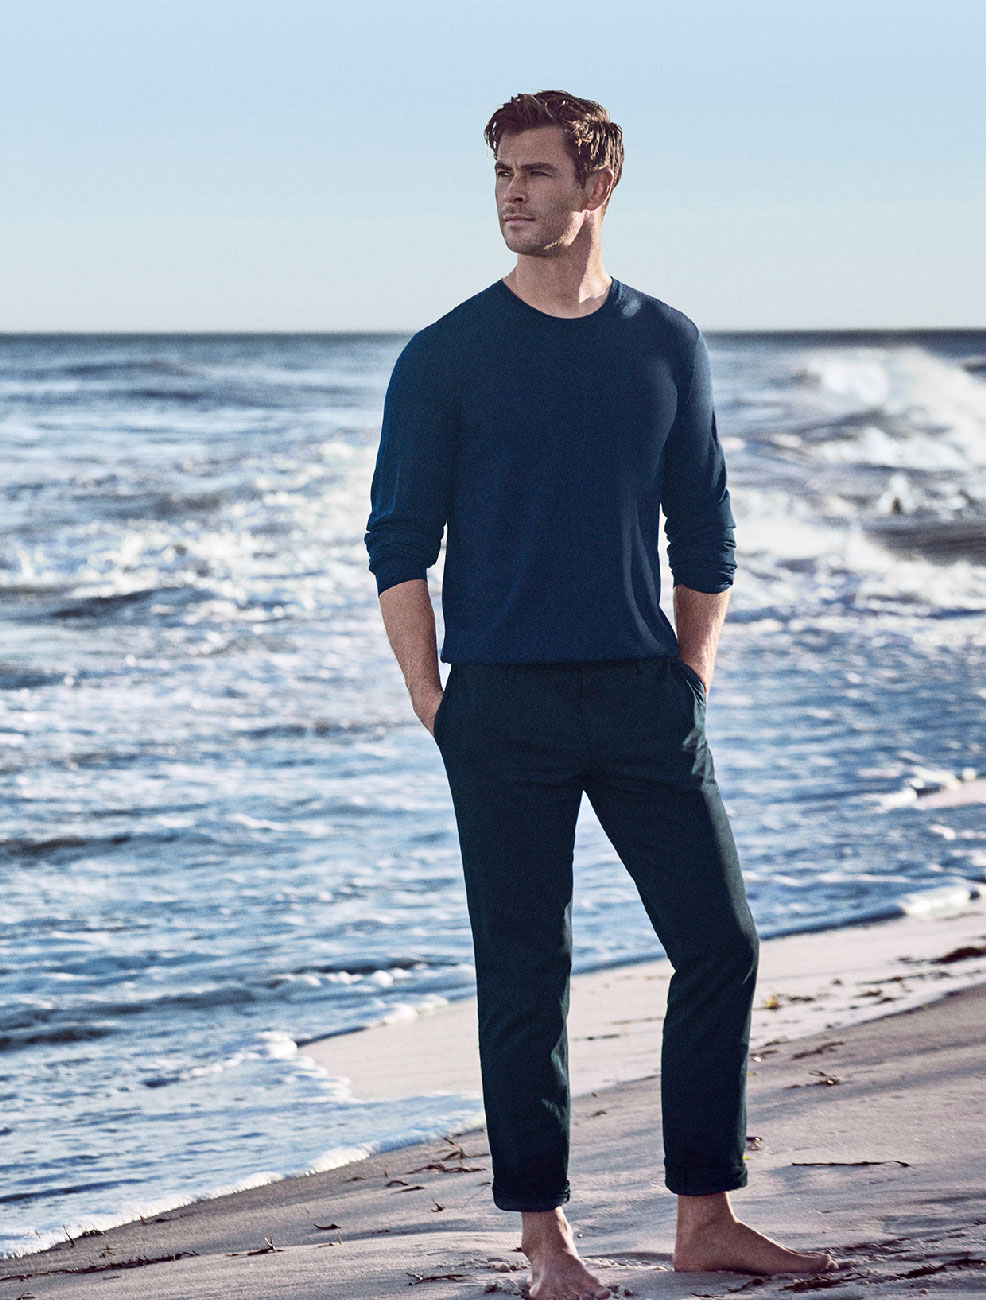 Hugo Boss Bottled Infinite, Chris Hemsworth - vőlegény illat, parfüm esküvőre